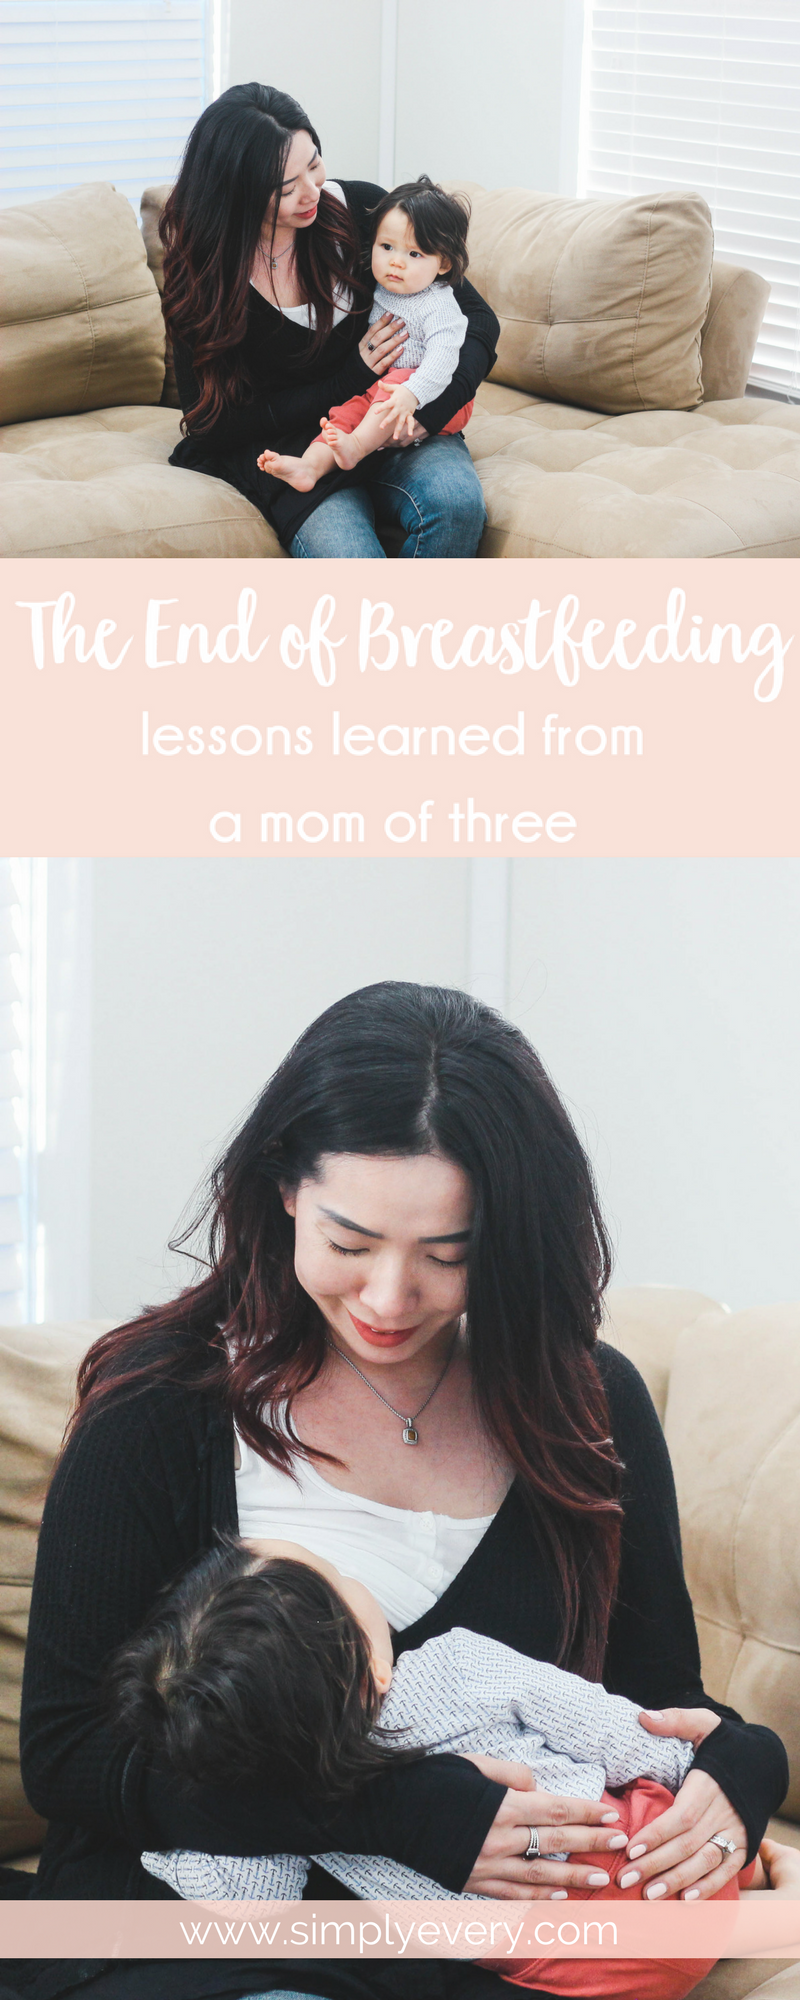 The End of Breastfeeding & Lessons Learned